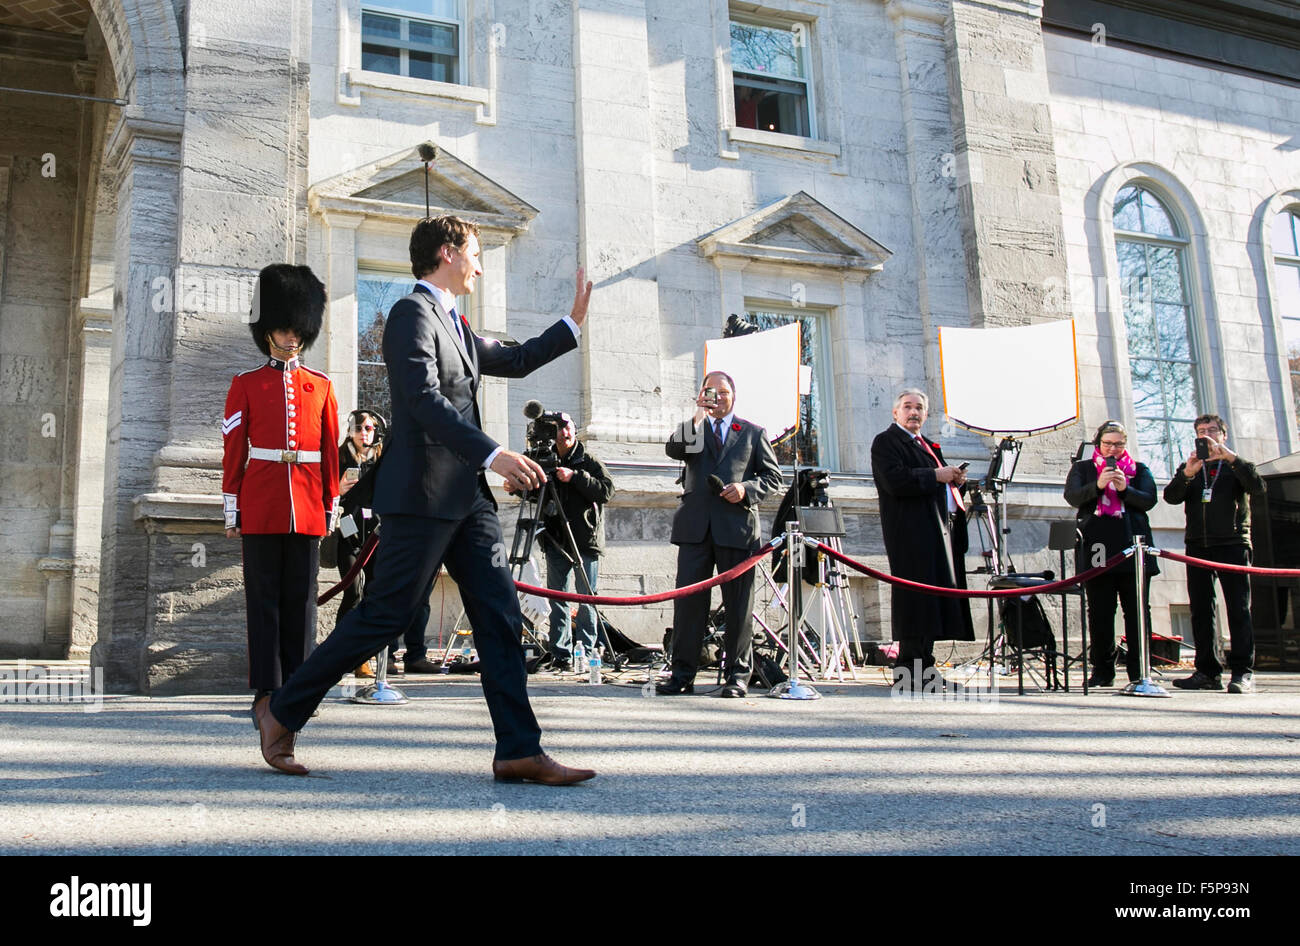 Rideau Hall Stock Photos & Rideau Hall Stock Images - Alamy